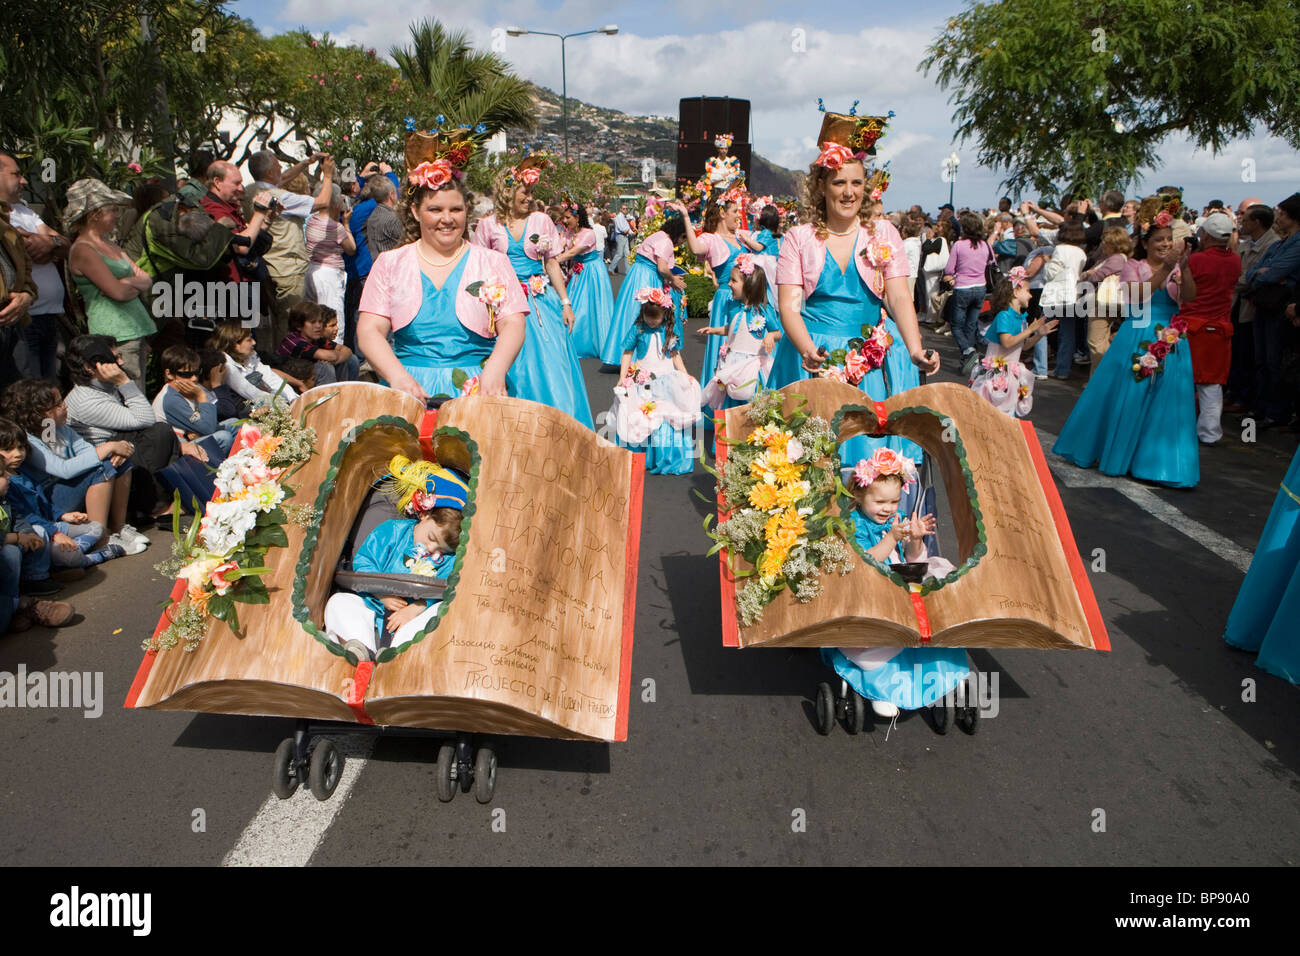 Mothers and children at the Madeira Flower Festival Parade, Funchal, Madeira, Portugal - Stock Image